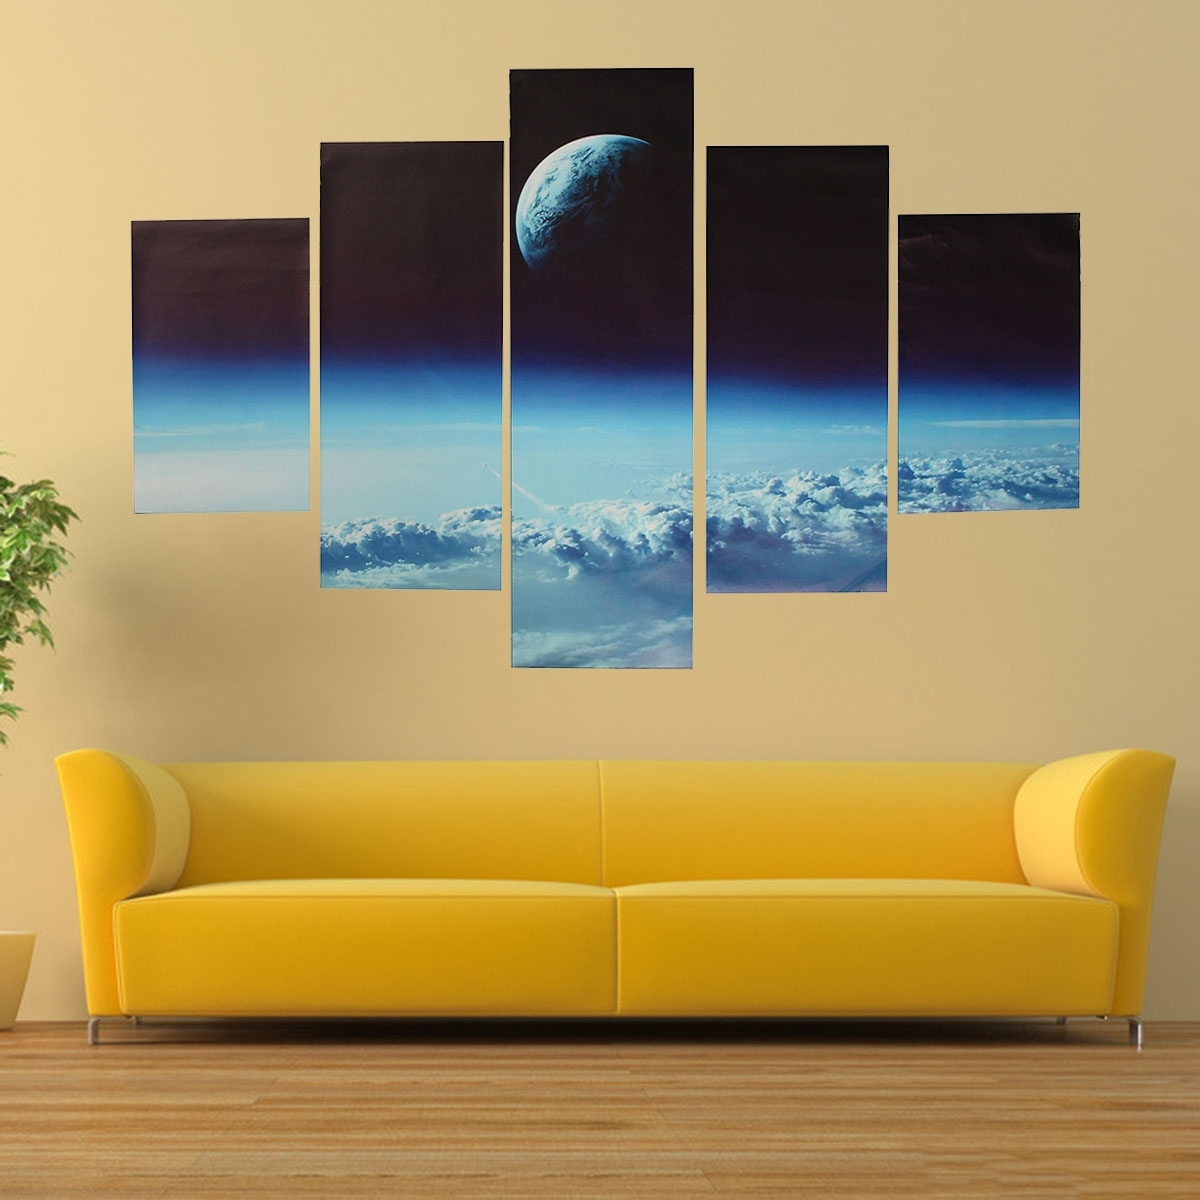 2018 Best of Modern Wall Art